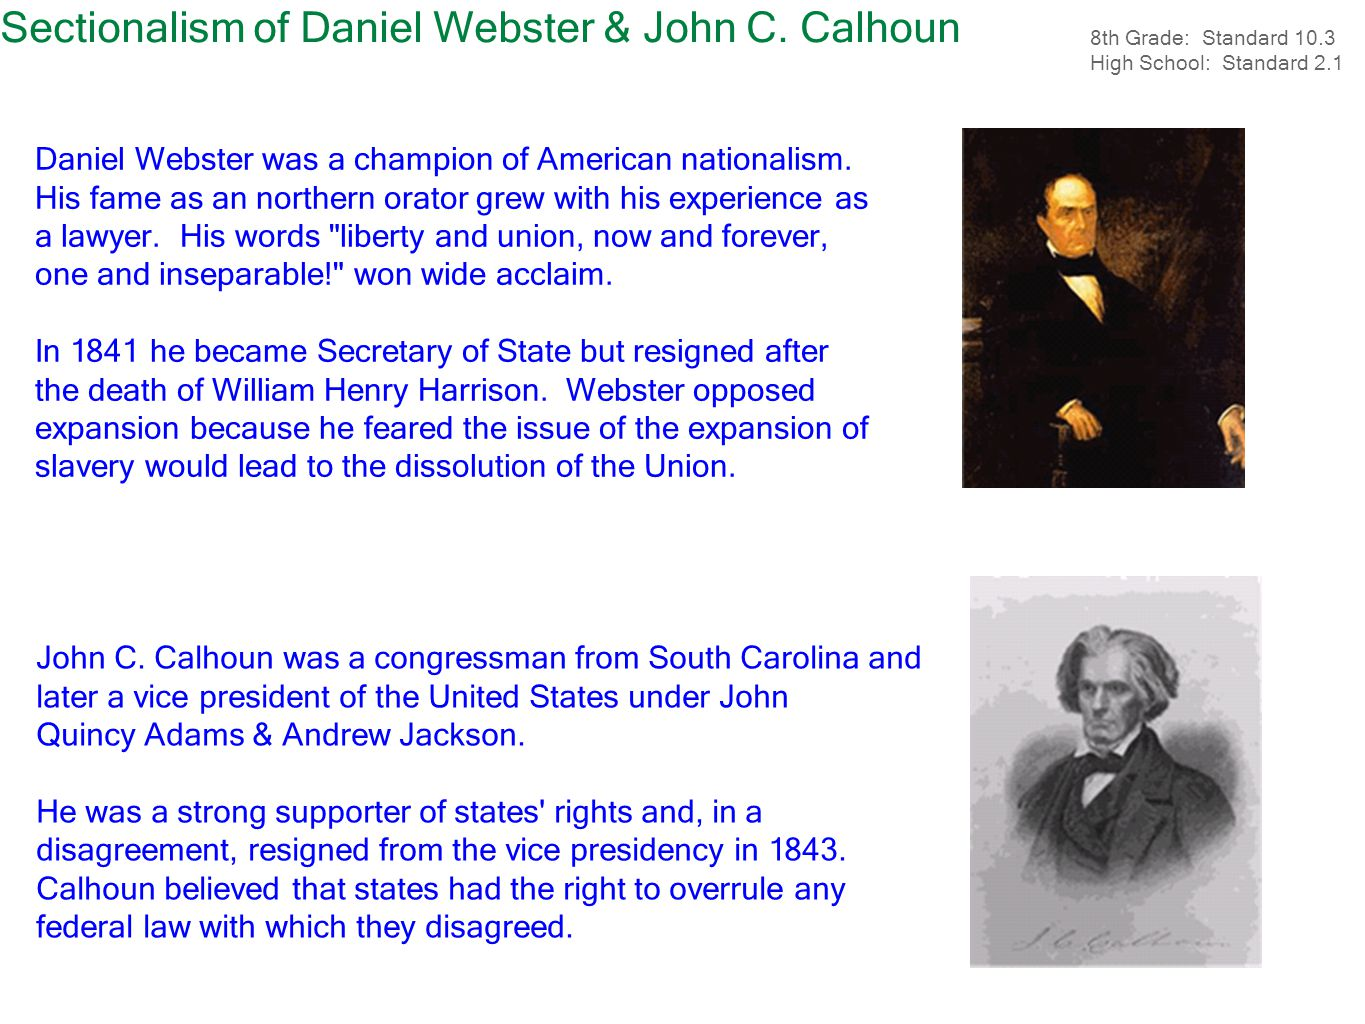 Sectionalism of Daniel Webster & John C. Calhoun John C. Calhoun was a congressman from South Carolina and later a vice president of the United States